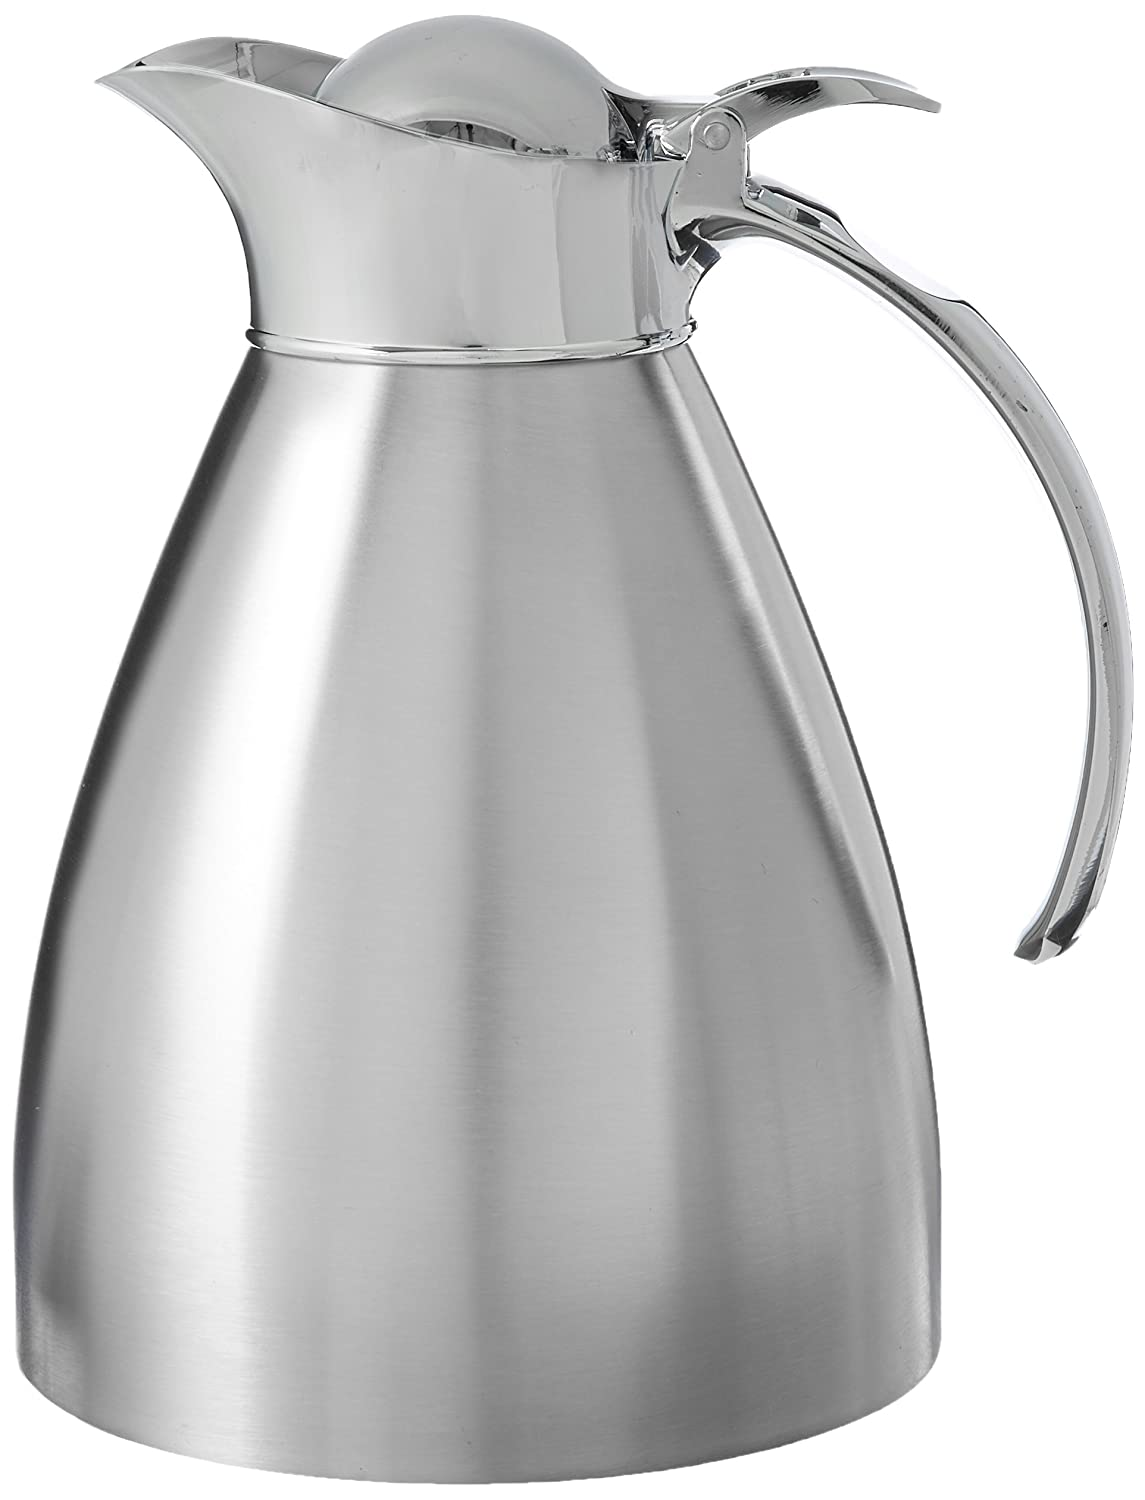 Service Ideas 98110BS Stainless Lined Vacuum Insulated Carafe with Stopper Lid, 1 Liter (33.8 oz.), Brushed Stainless/Mirrored Accents 98210BS